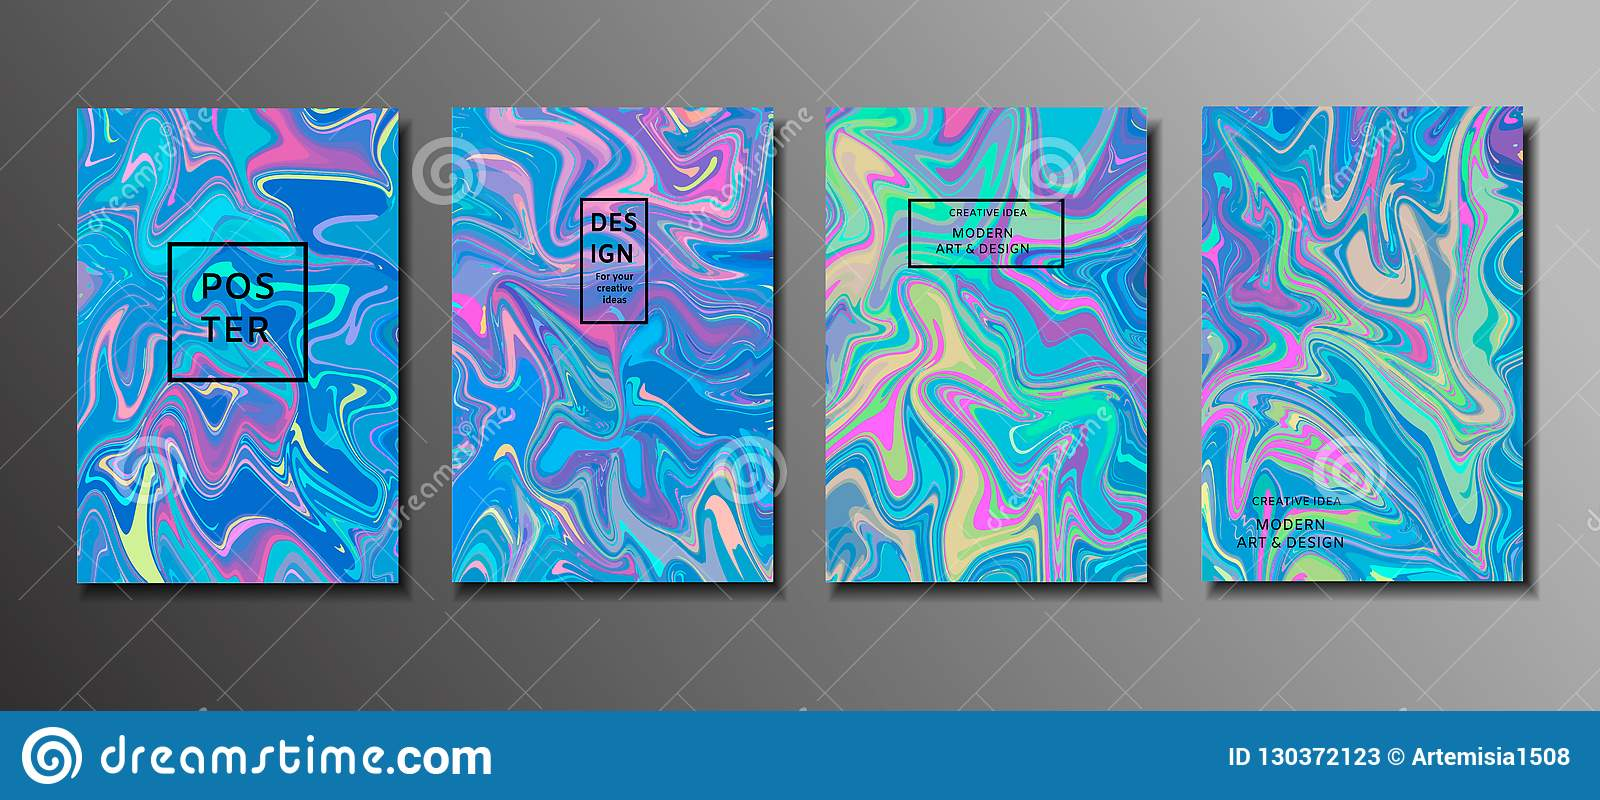 Abstract Painting Background For Wallpapers Posters Cards In Stock Vector Illustration Of Banner Graphic 130372123